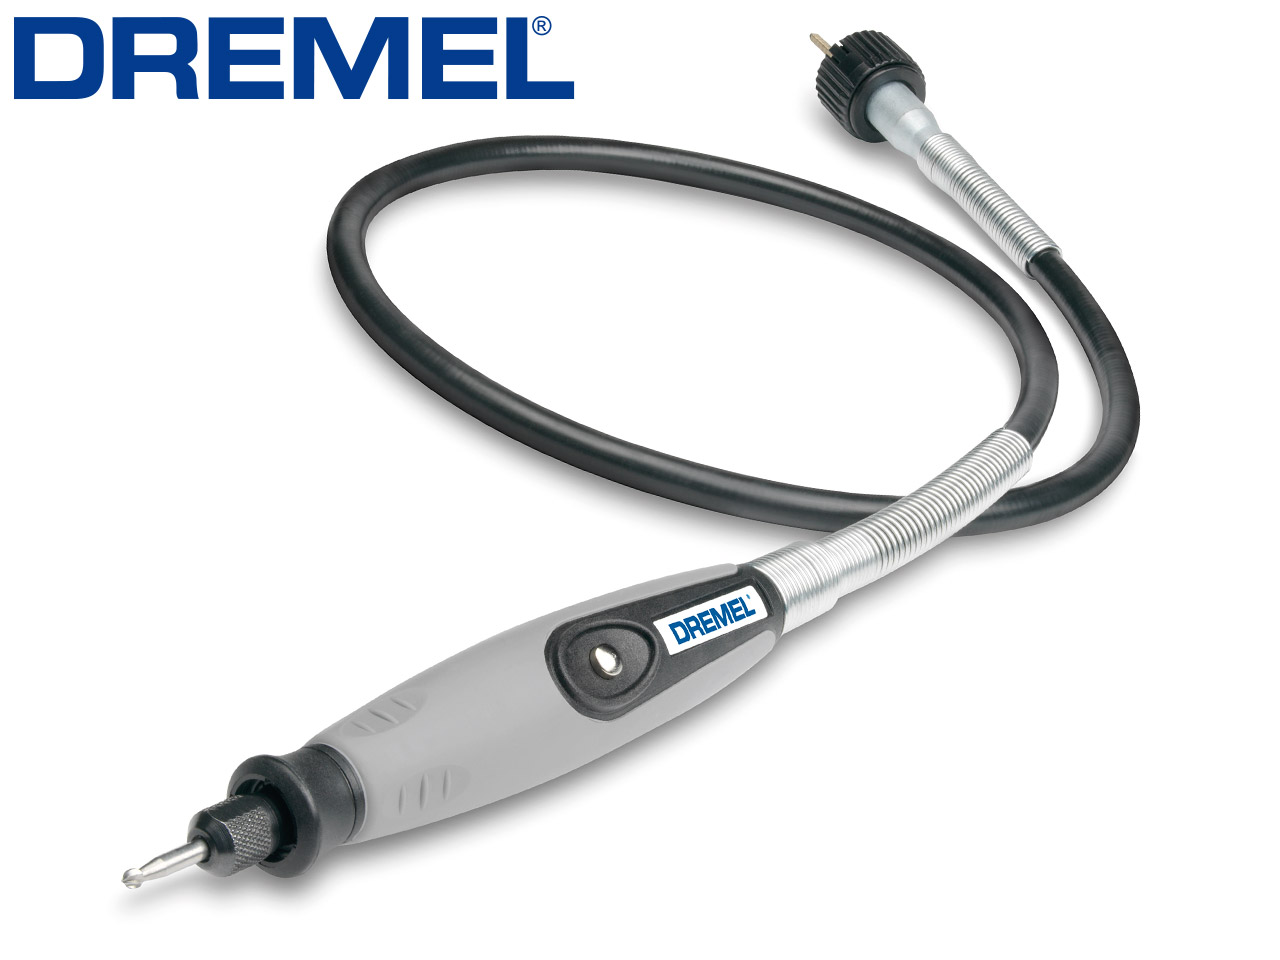 flexible dremel